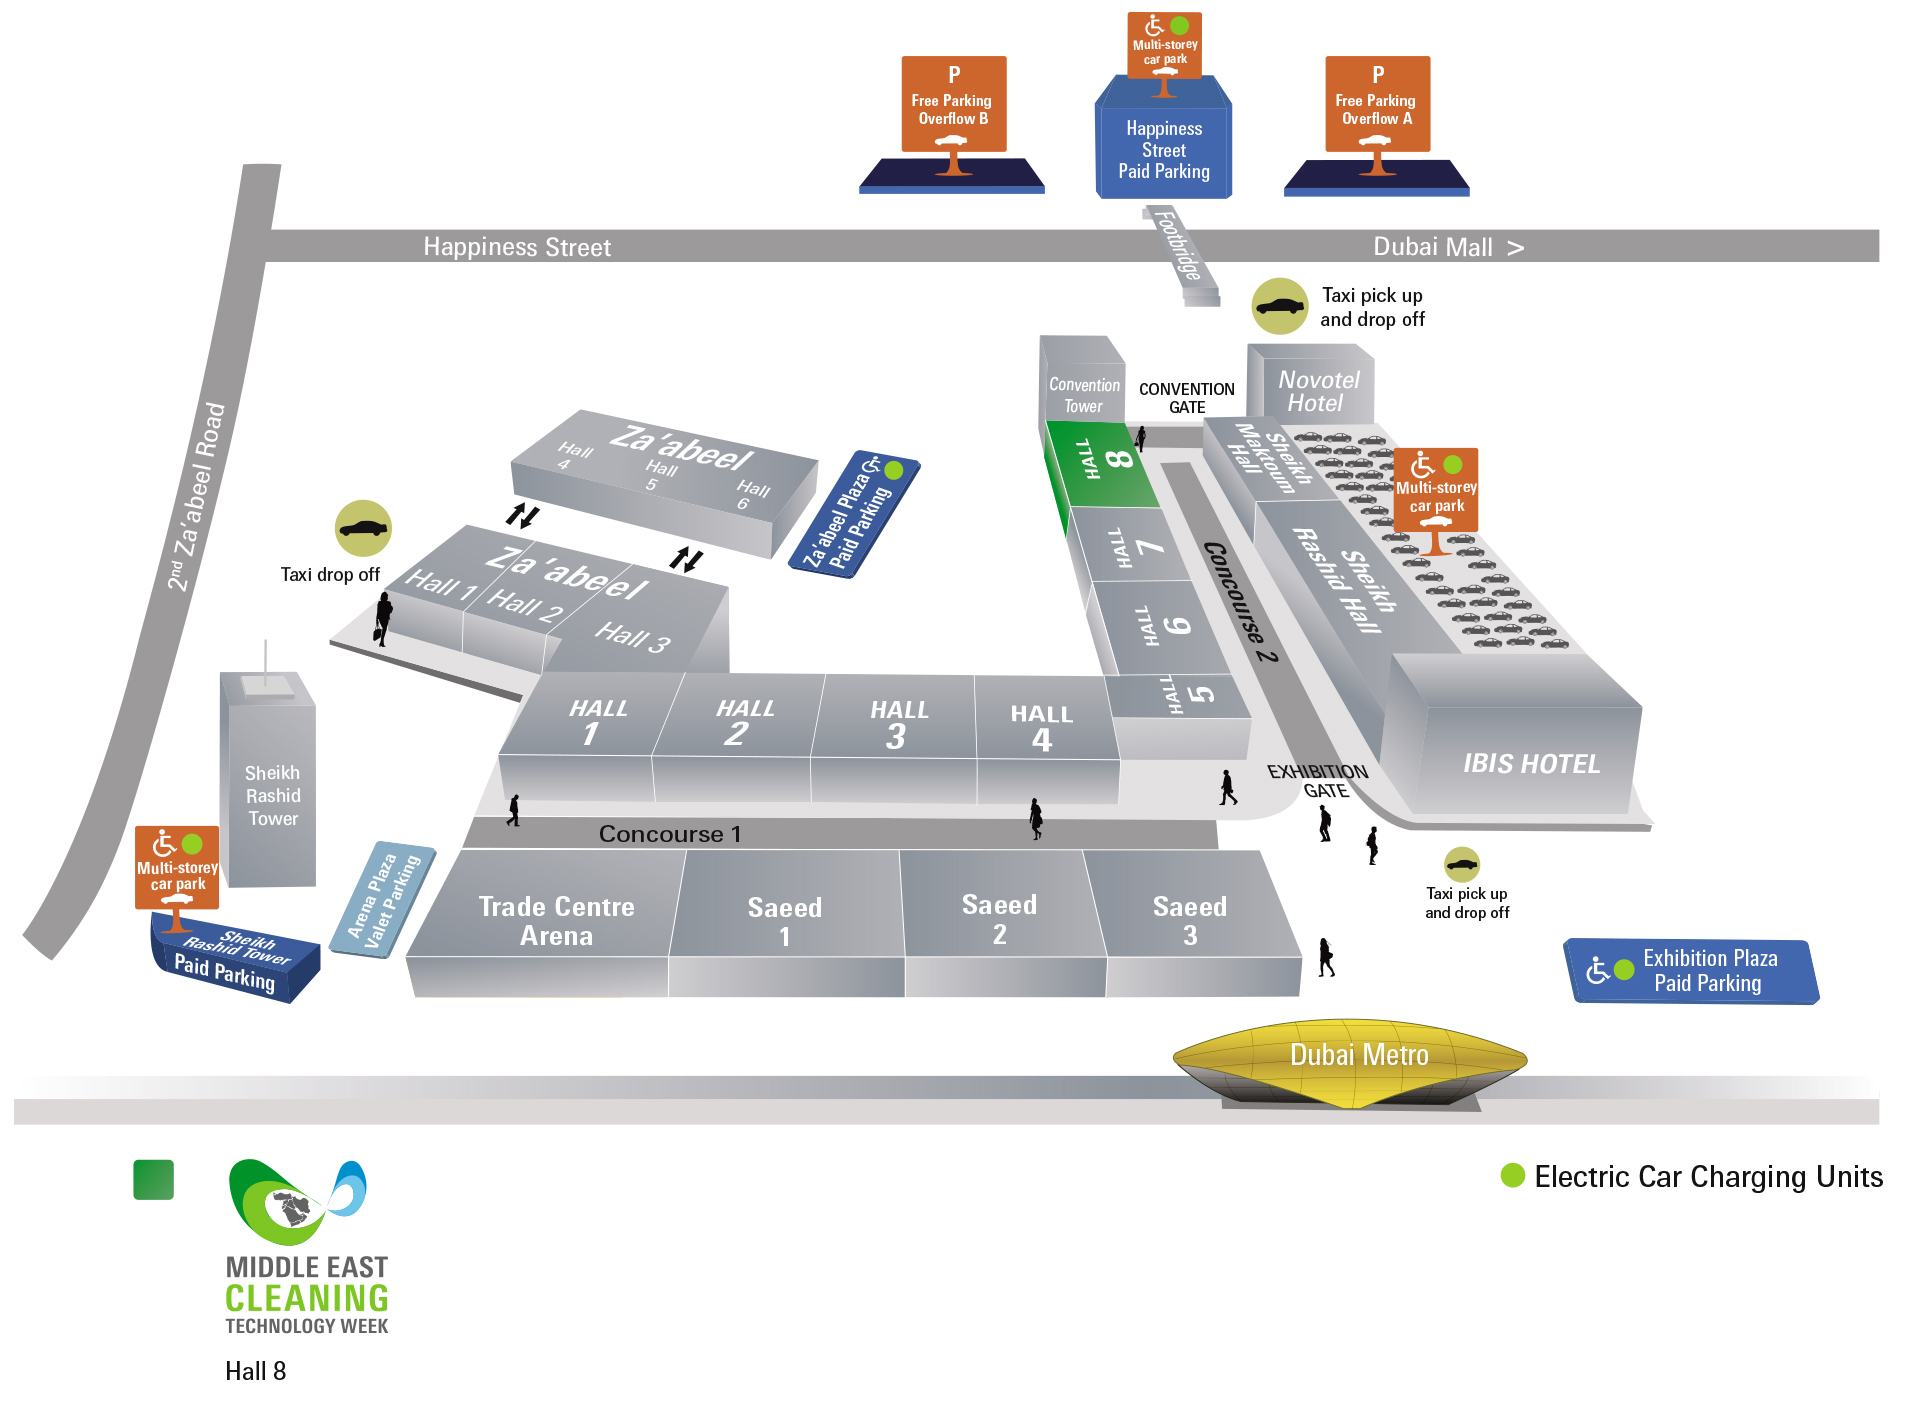 Middle East Cleaning Technology Week Venue Map